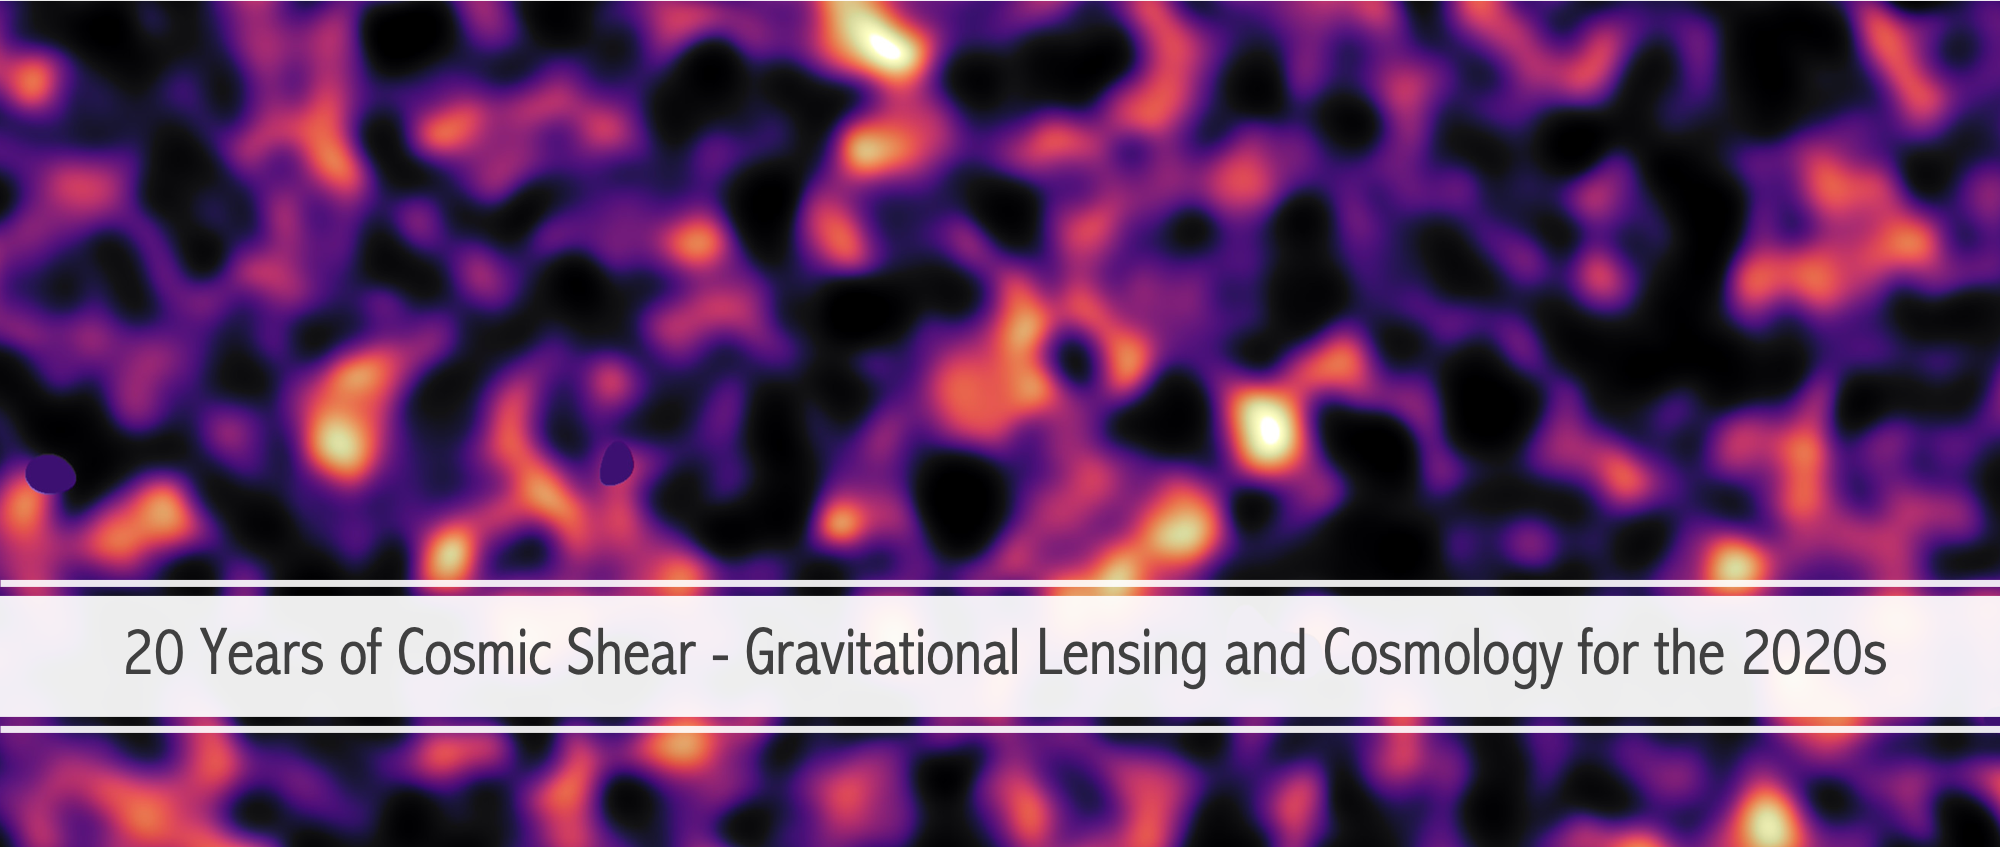 20 Years of Cosmic Shear - Gravitational Lensing and Cosmology for the 2020s